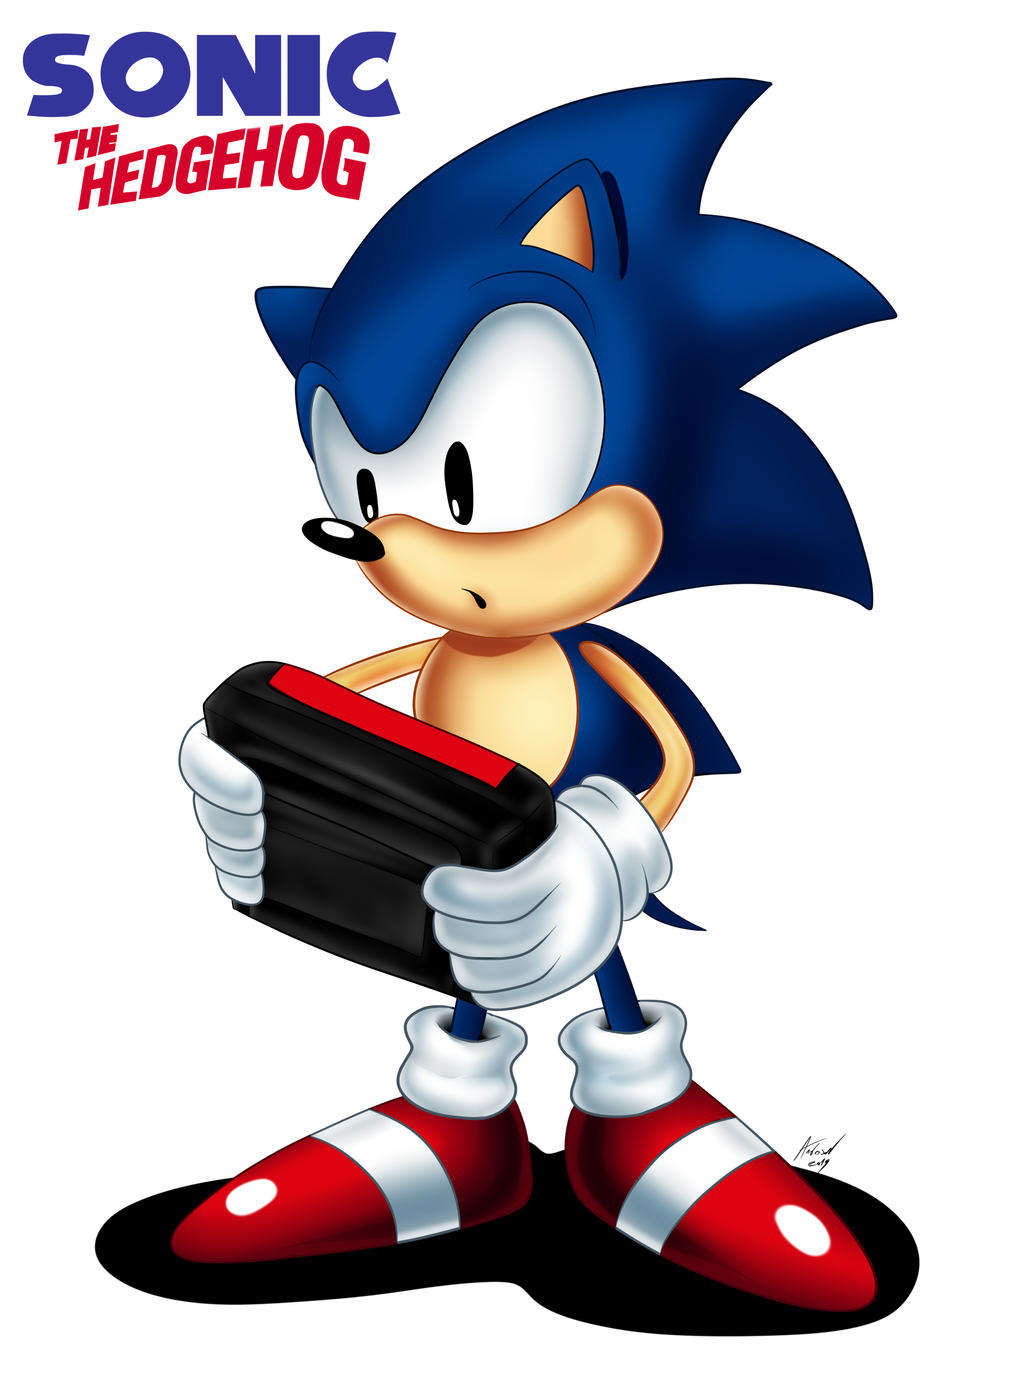 Sonic Classic 2 By Andersonicth On Deviantart